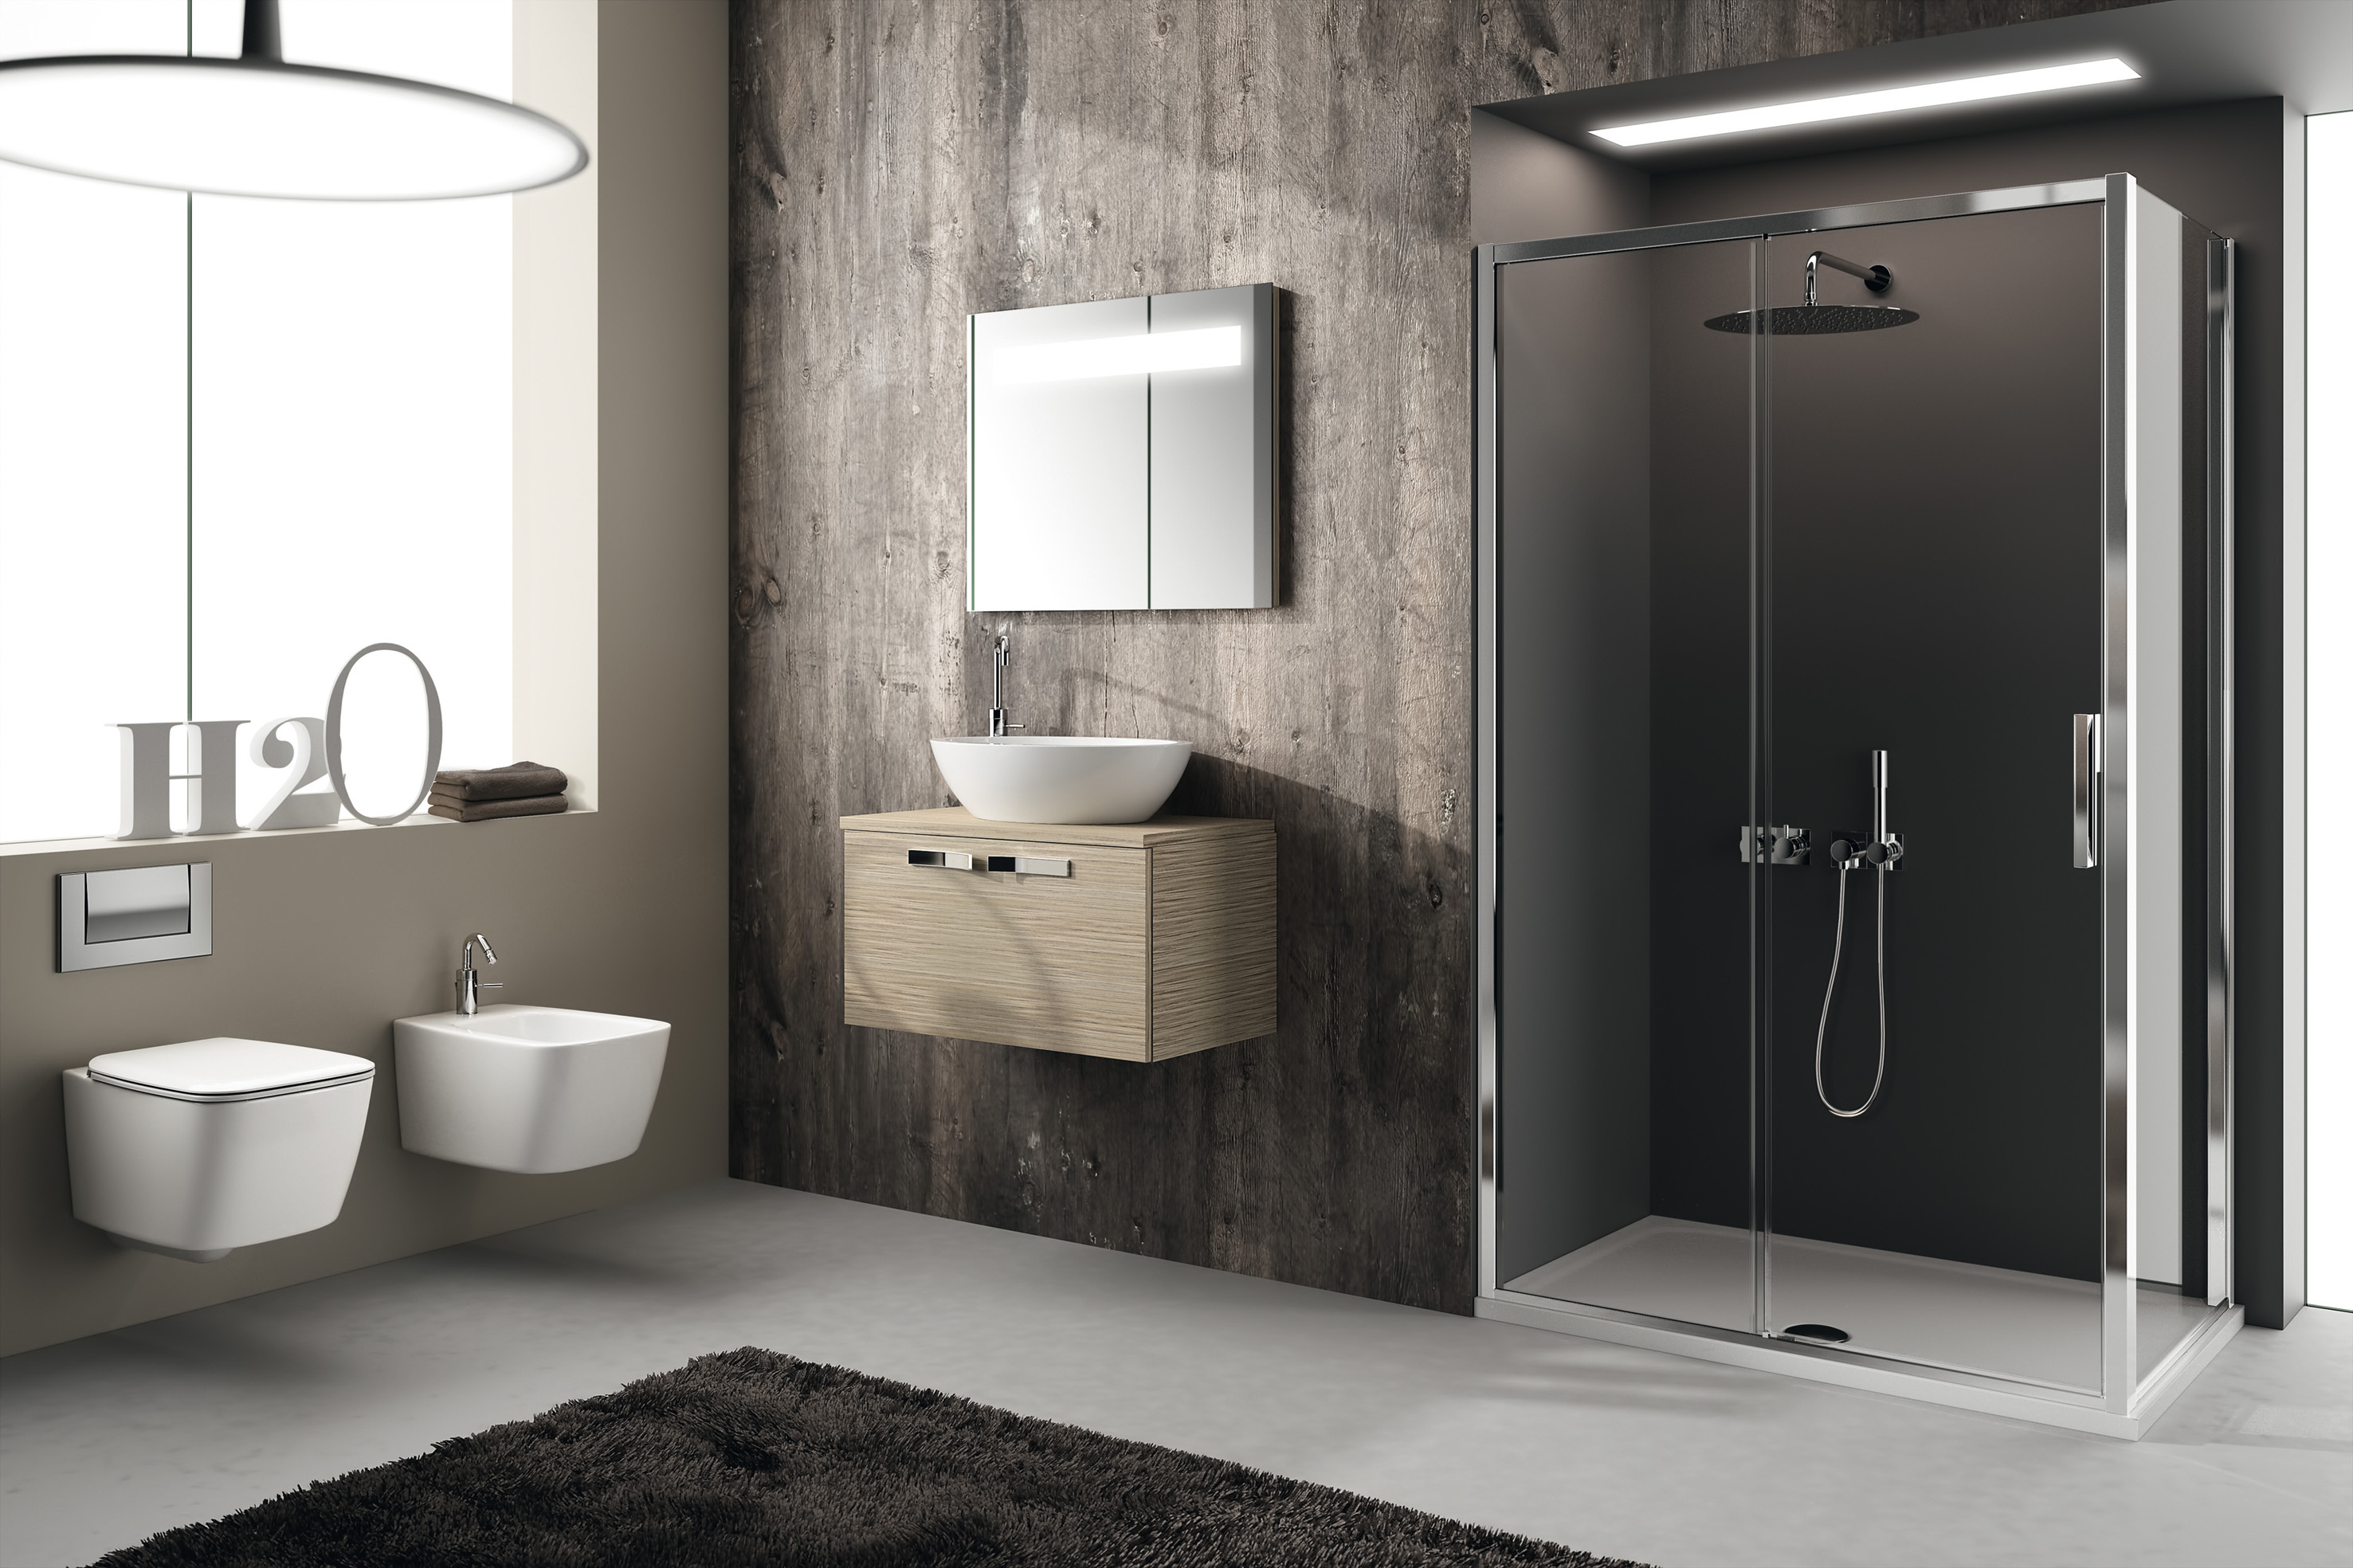 ish 2015 le novit di ideal standard bagno italiano blog